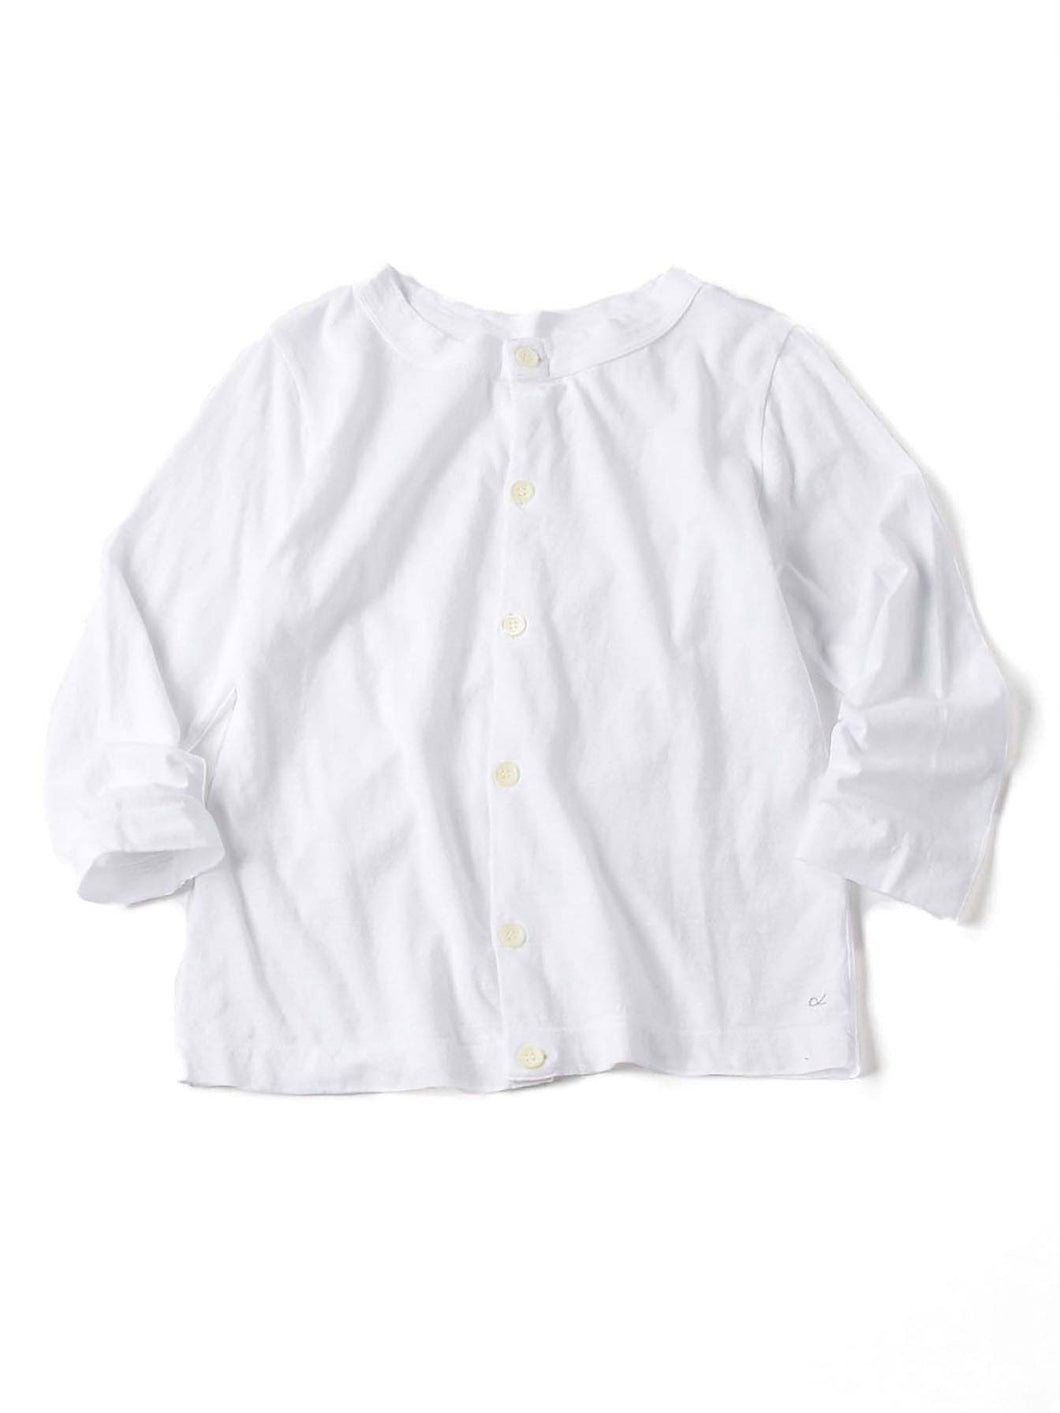 Zimba Cotton 45 Star 3/4 Sleeve Cardigan in white